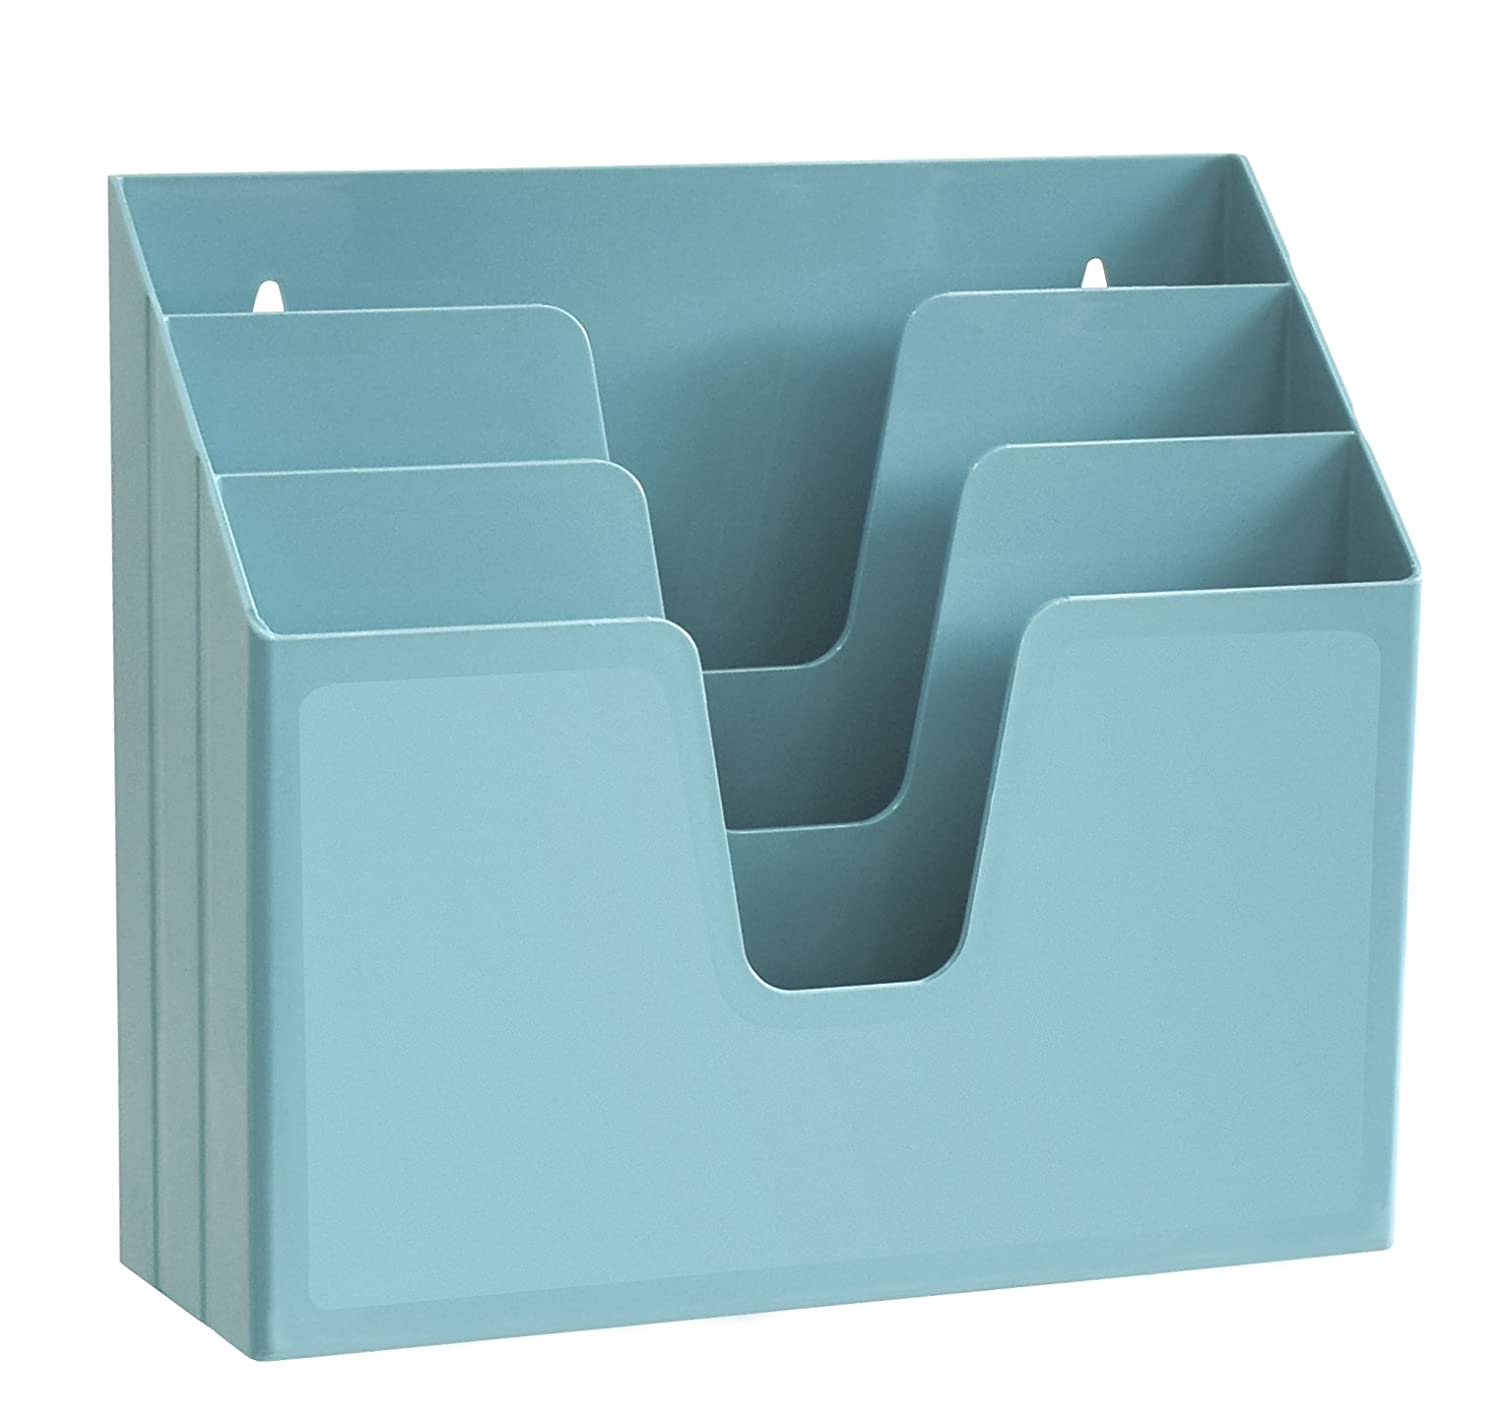 Acrimet Horizontal Triple File Folder Organizer (Solid Green Color)